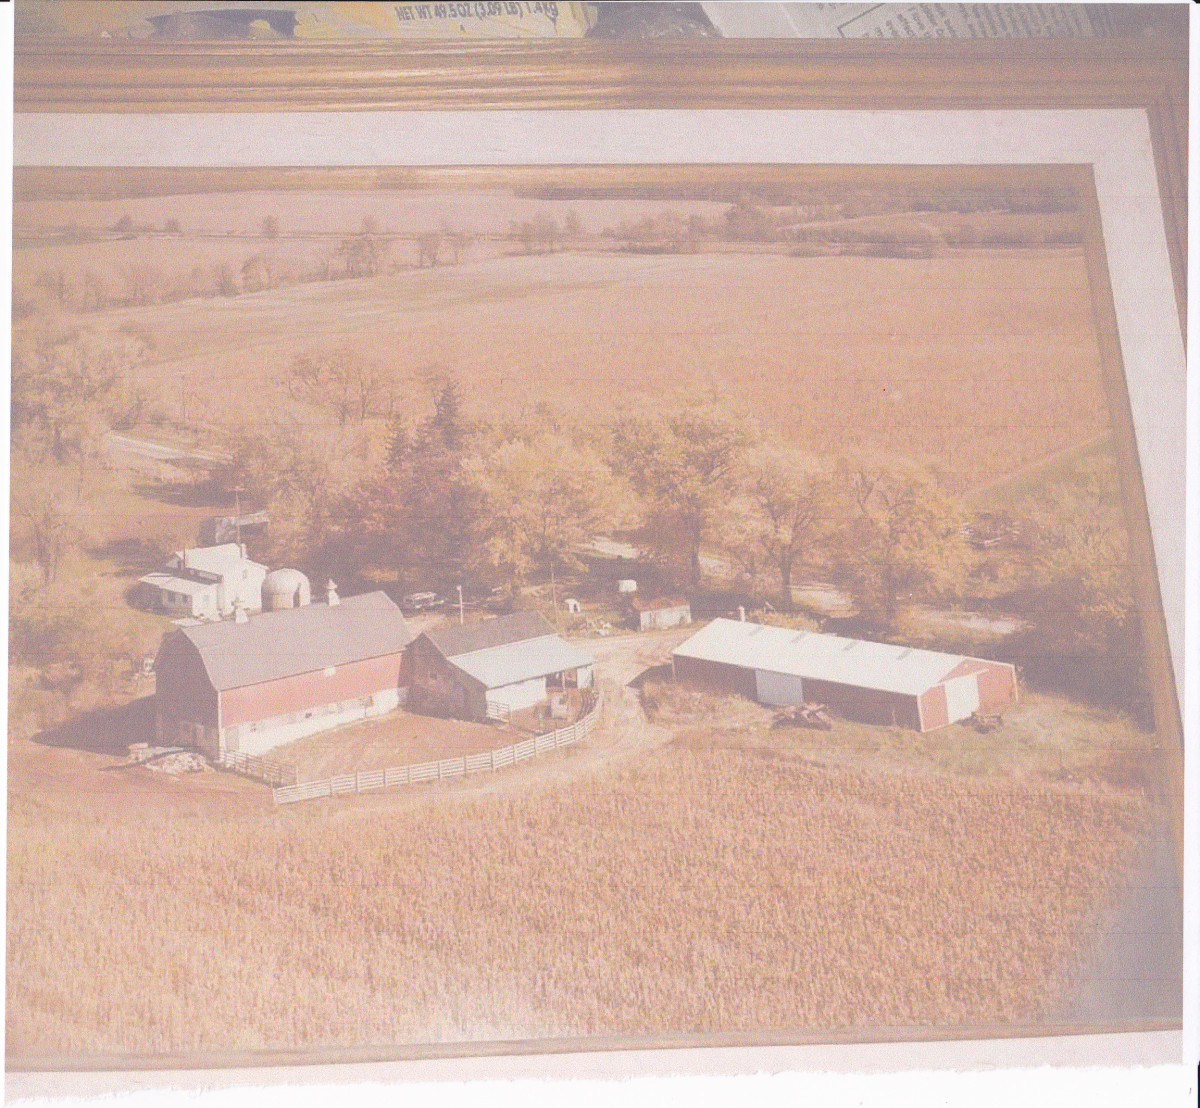 Aerial photo of our family farm barn, sheds, and house.  Taken in the 1970s.